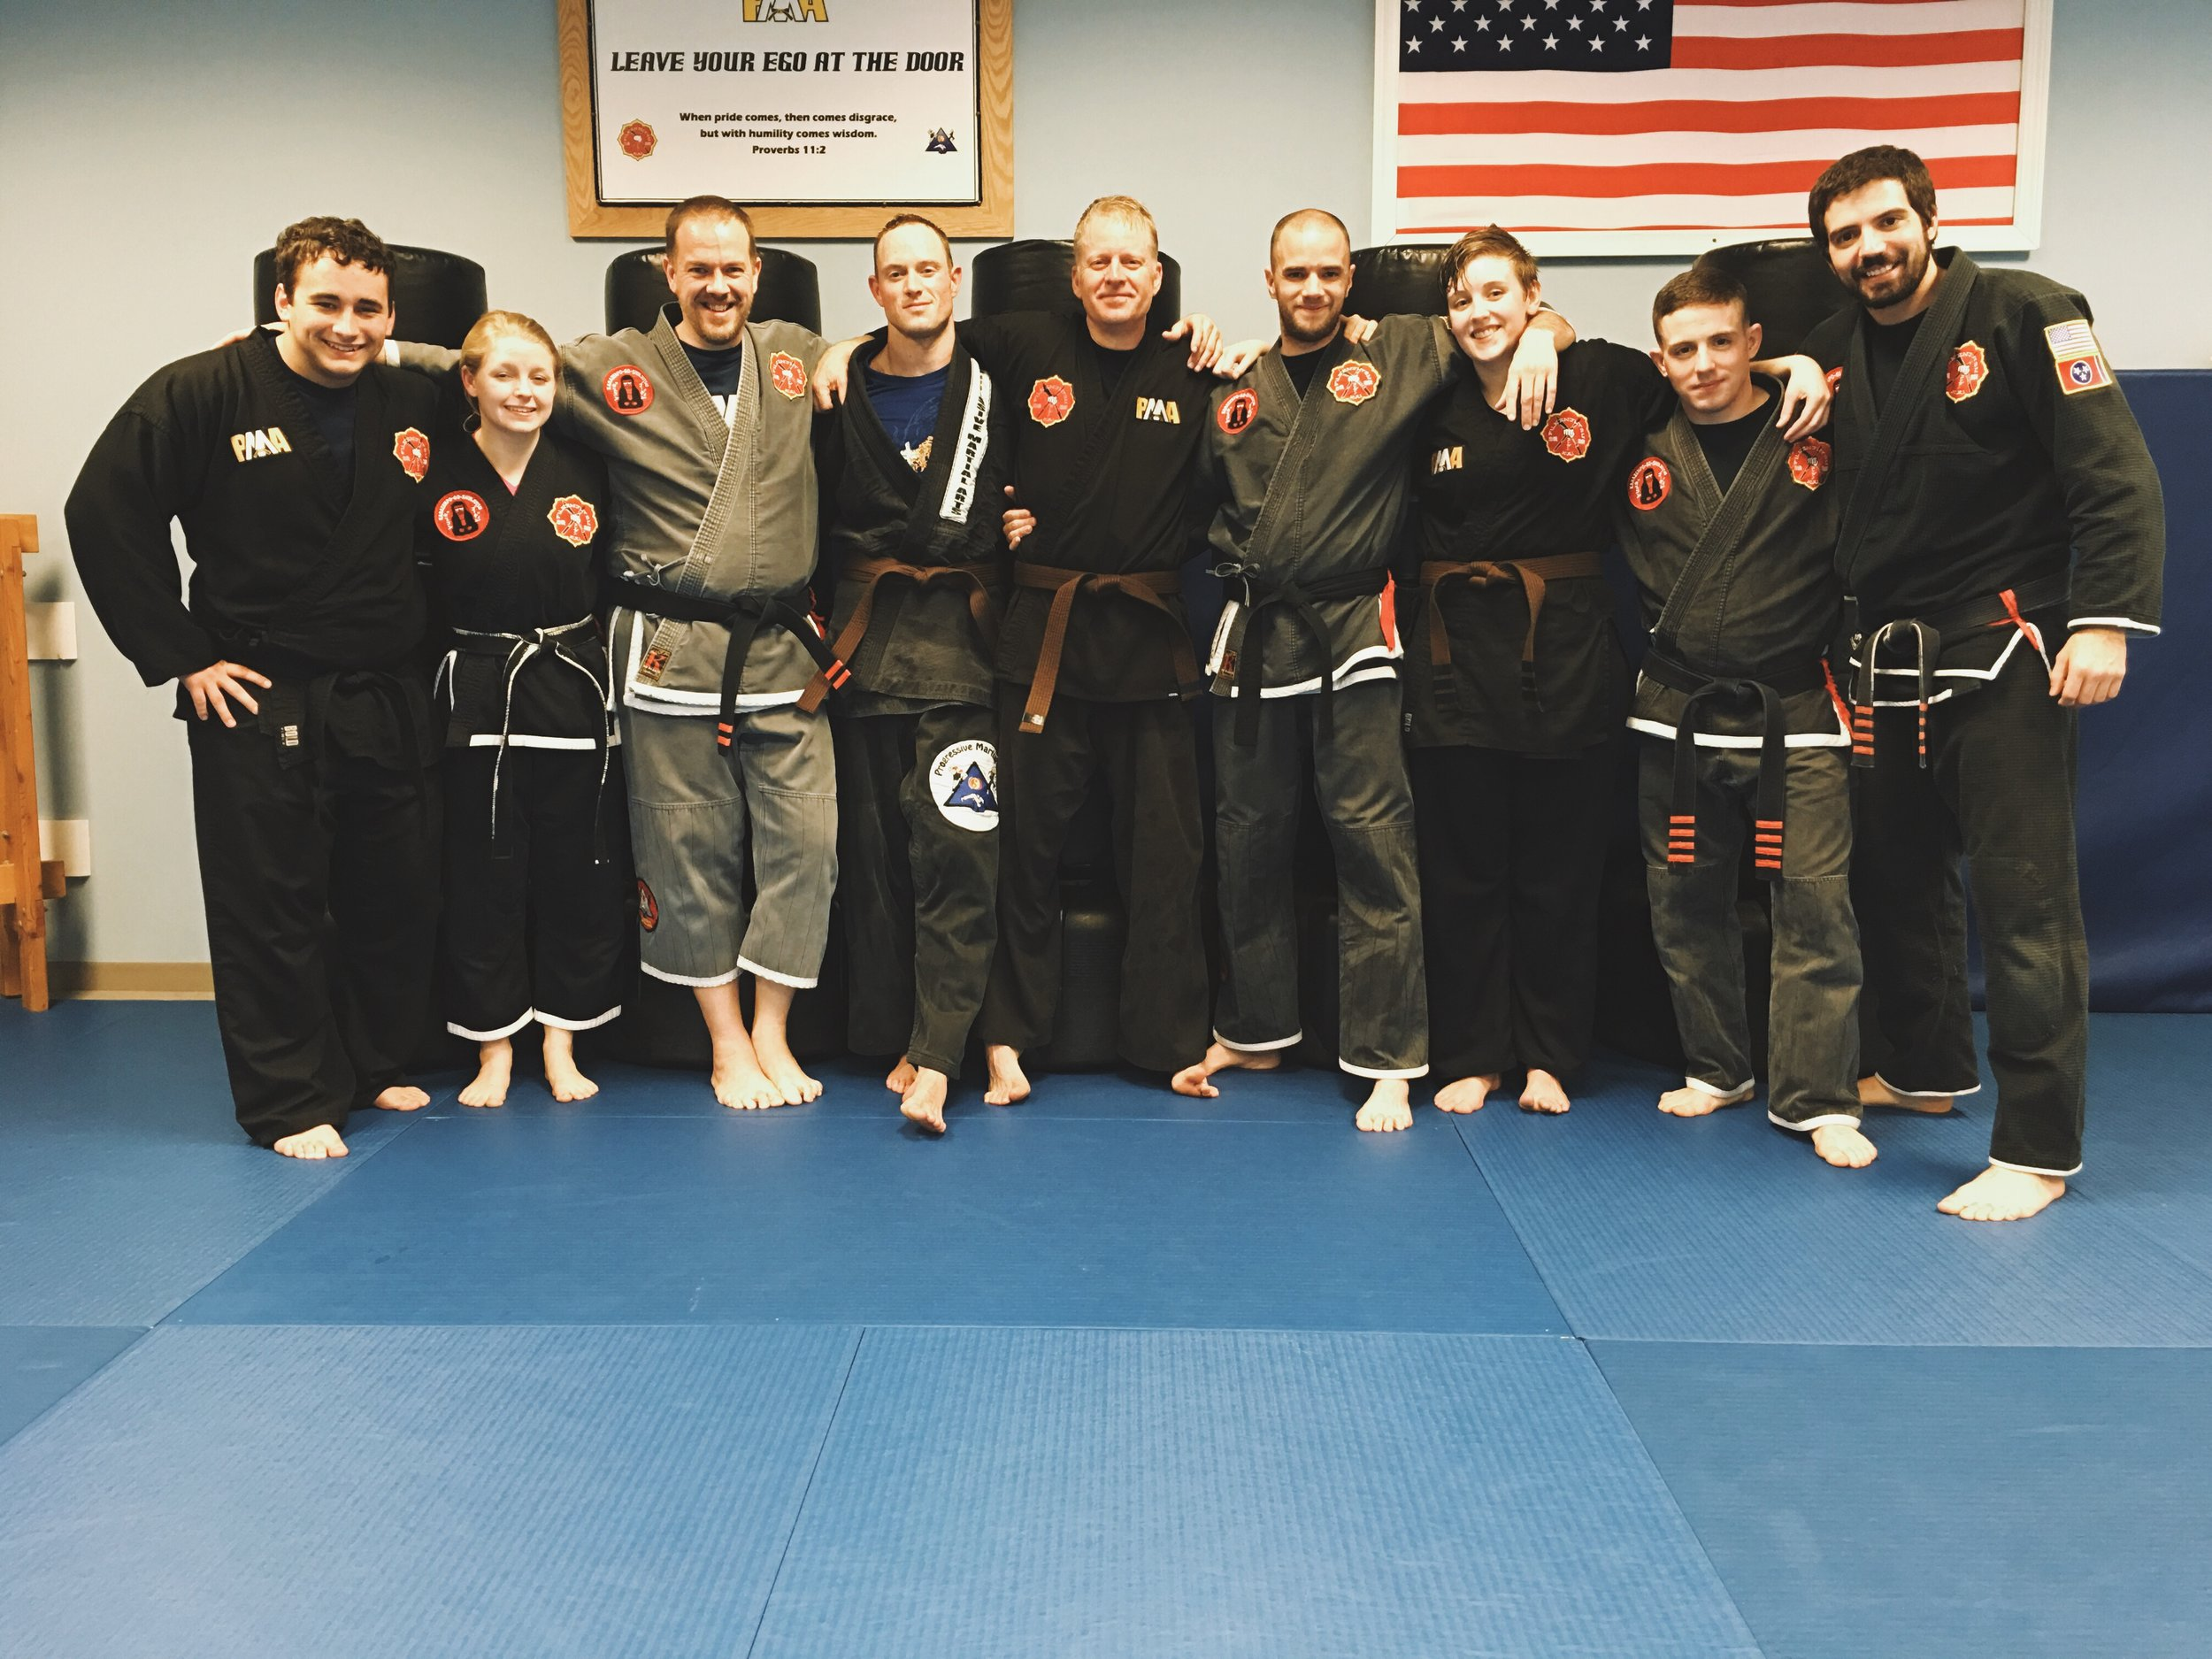 Gary (pictured in middle) with some of his instructors and training partners at Progressive Martial Arts Academy.